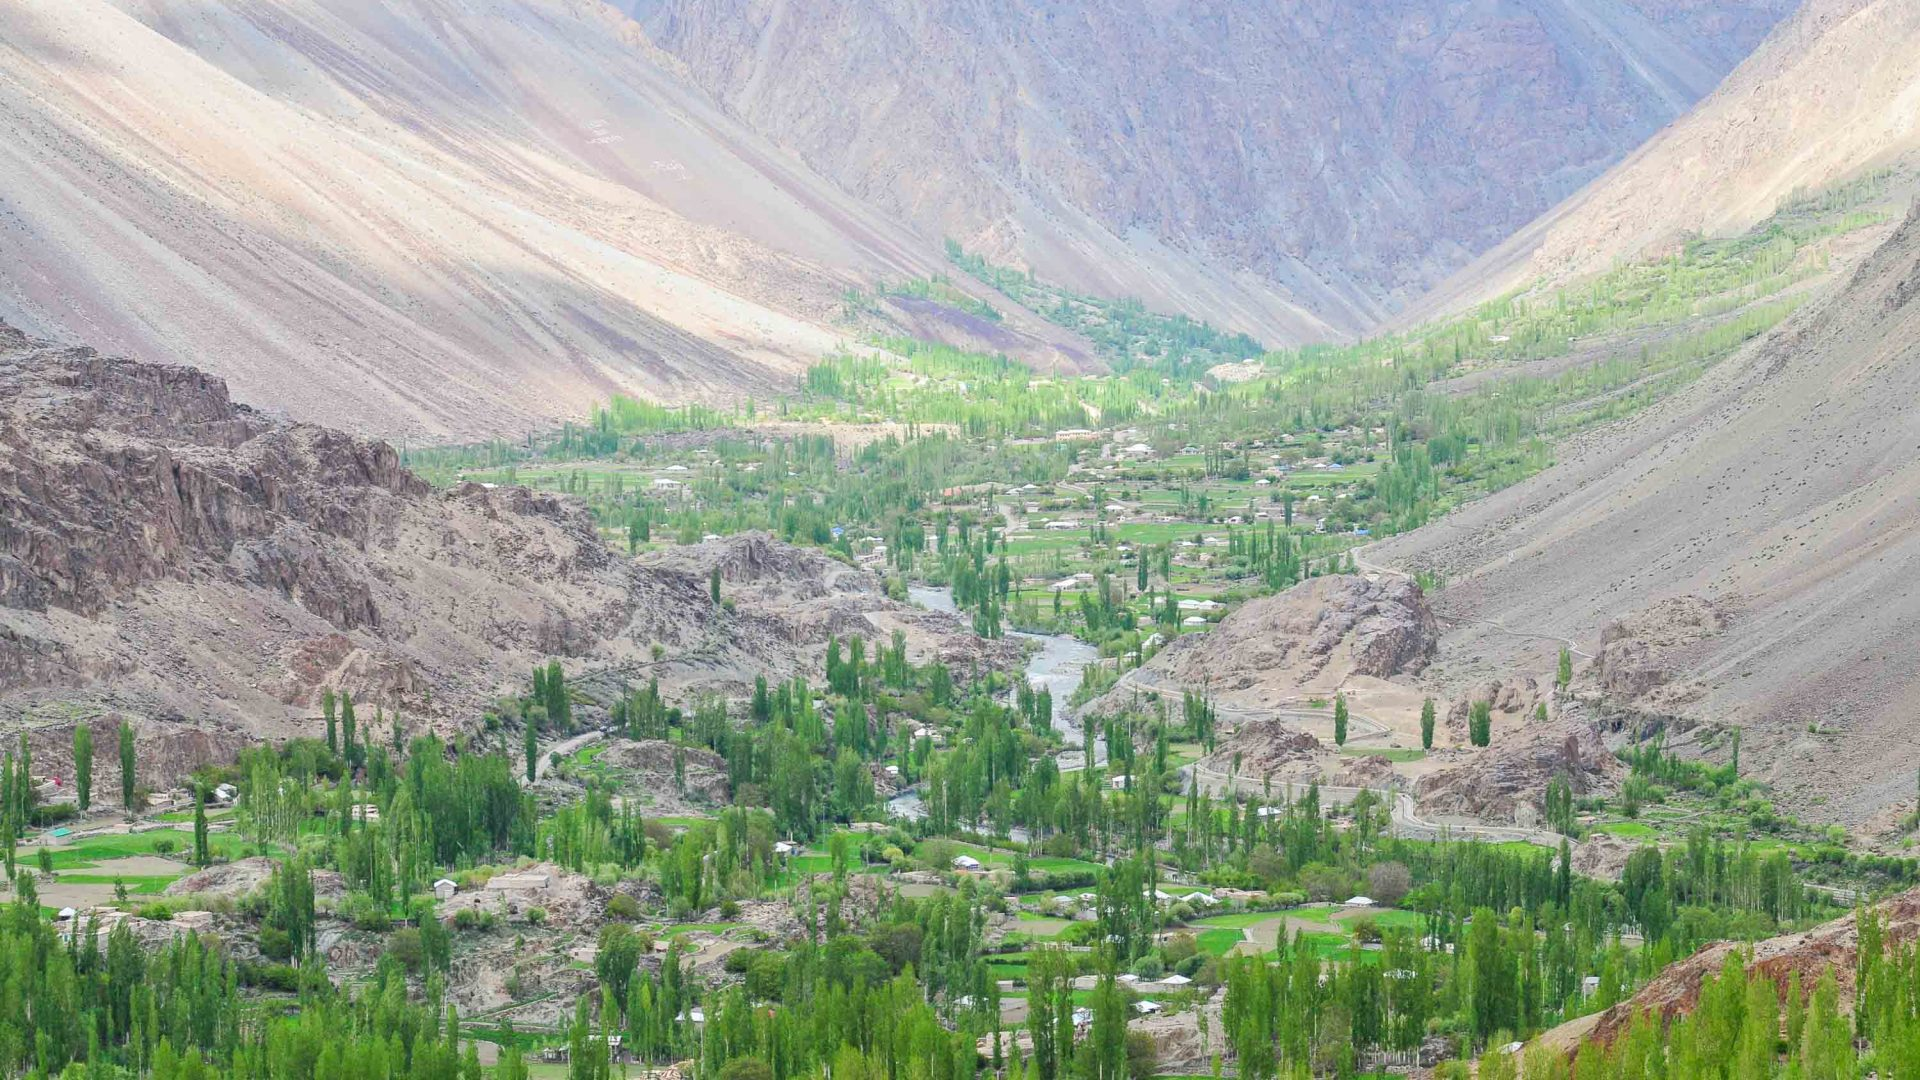 Villages in Pakistan surrounded by arid peaks.